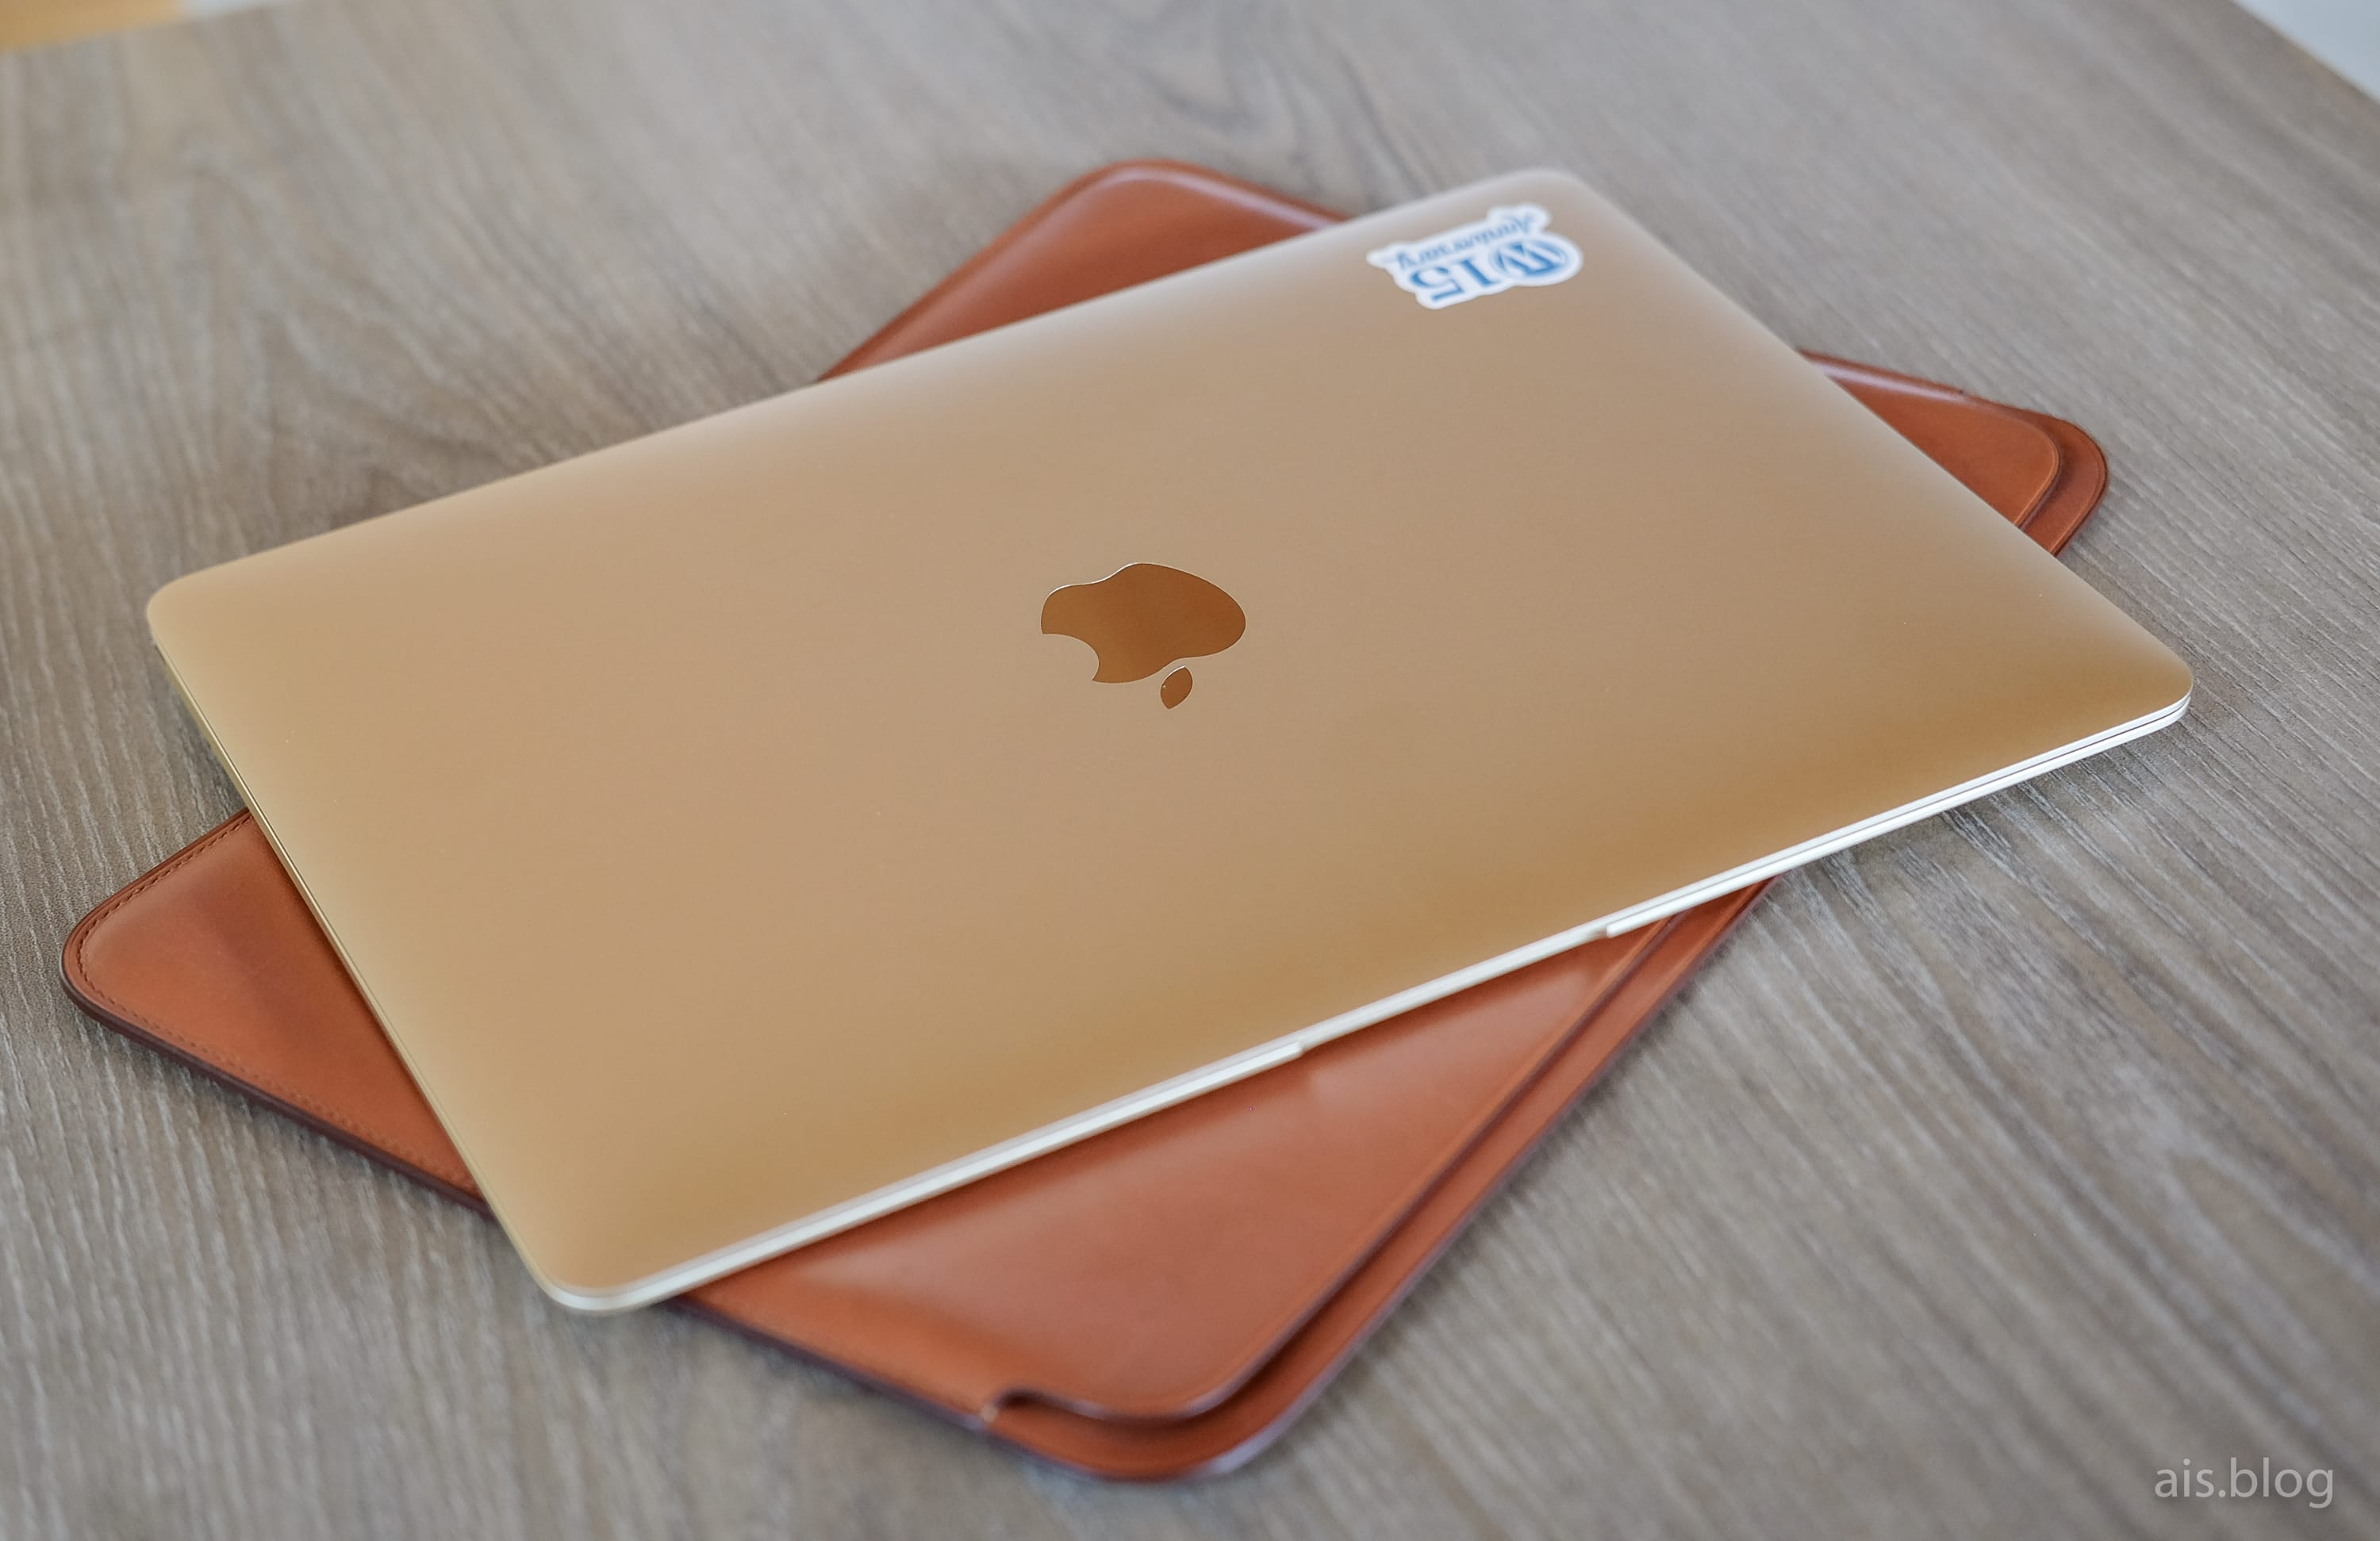 12-inch macbook review